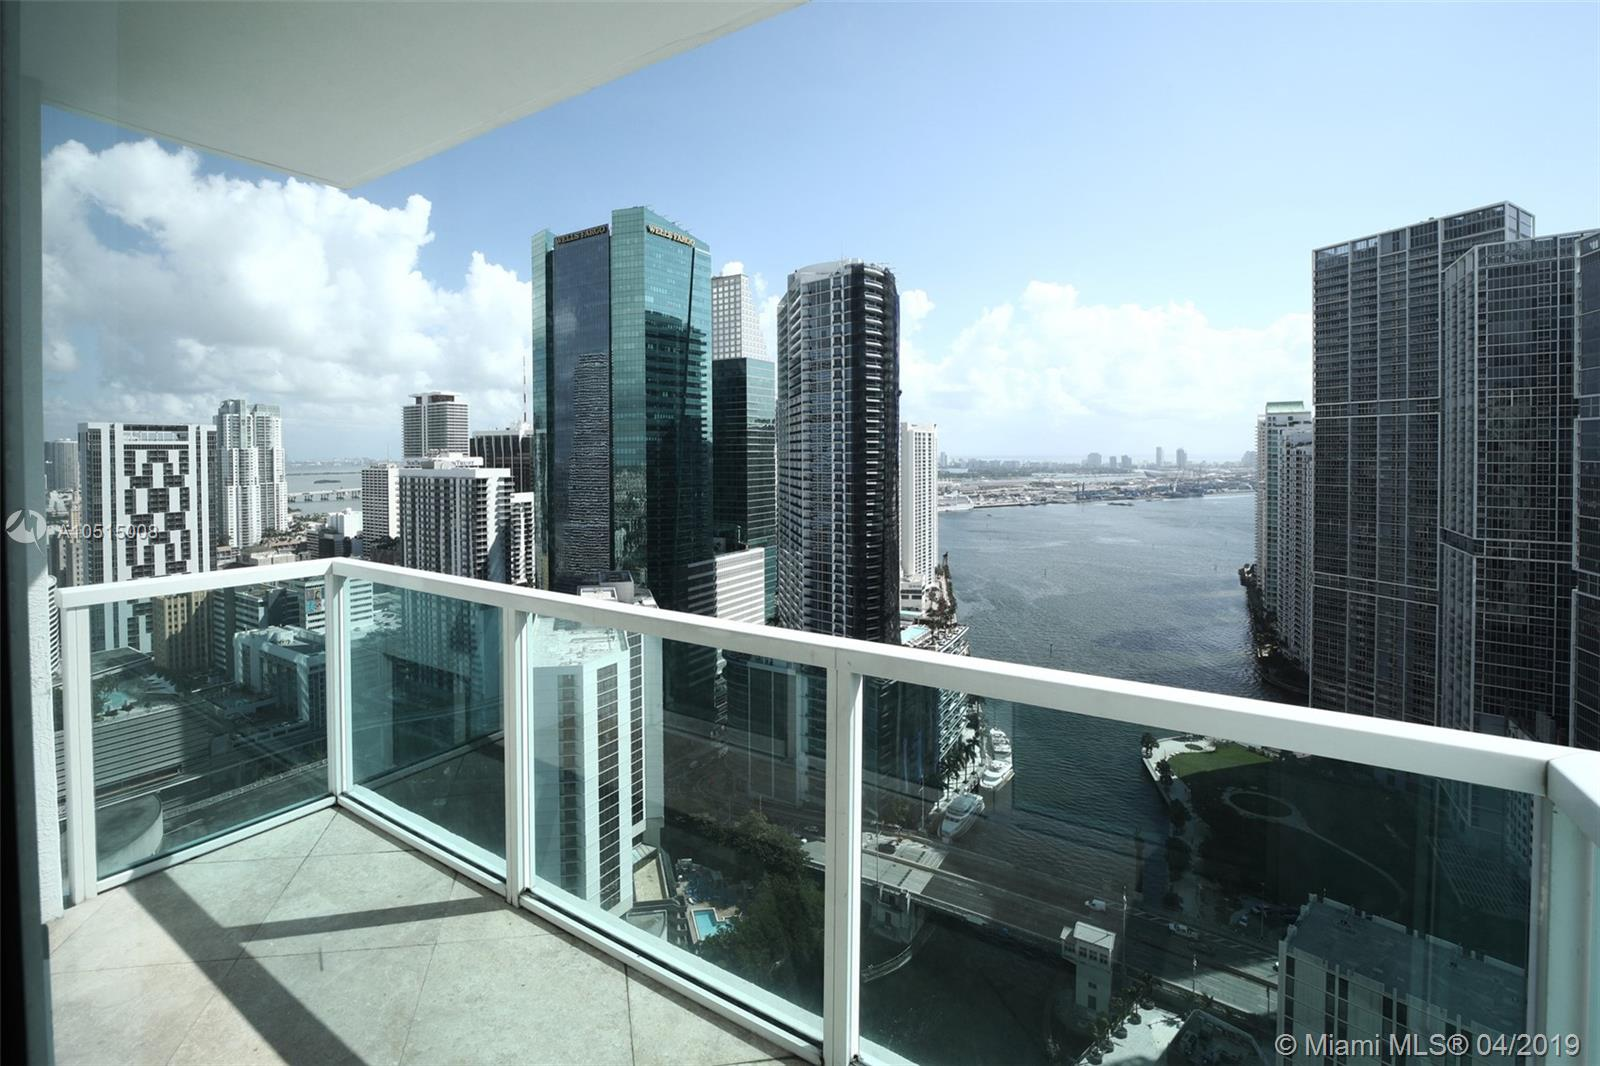 Gorgeous 3 Bedroom High Rise Corner Unit On Brickell On The River North. <Br />Fantastic Water & City Views!!!<Br />Incredible Location Next To Brickell City Centre & Metromover. <Br />Pet-Friendly<Br />Motivated Seller!!!